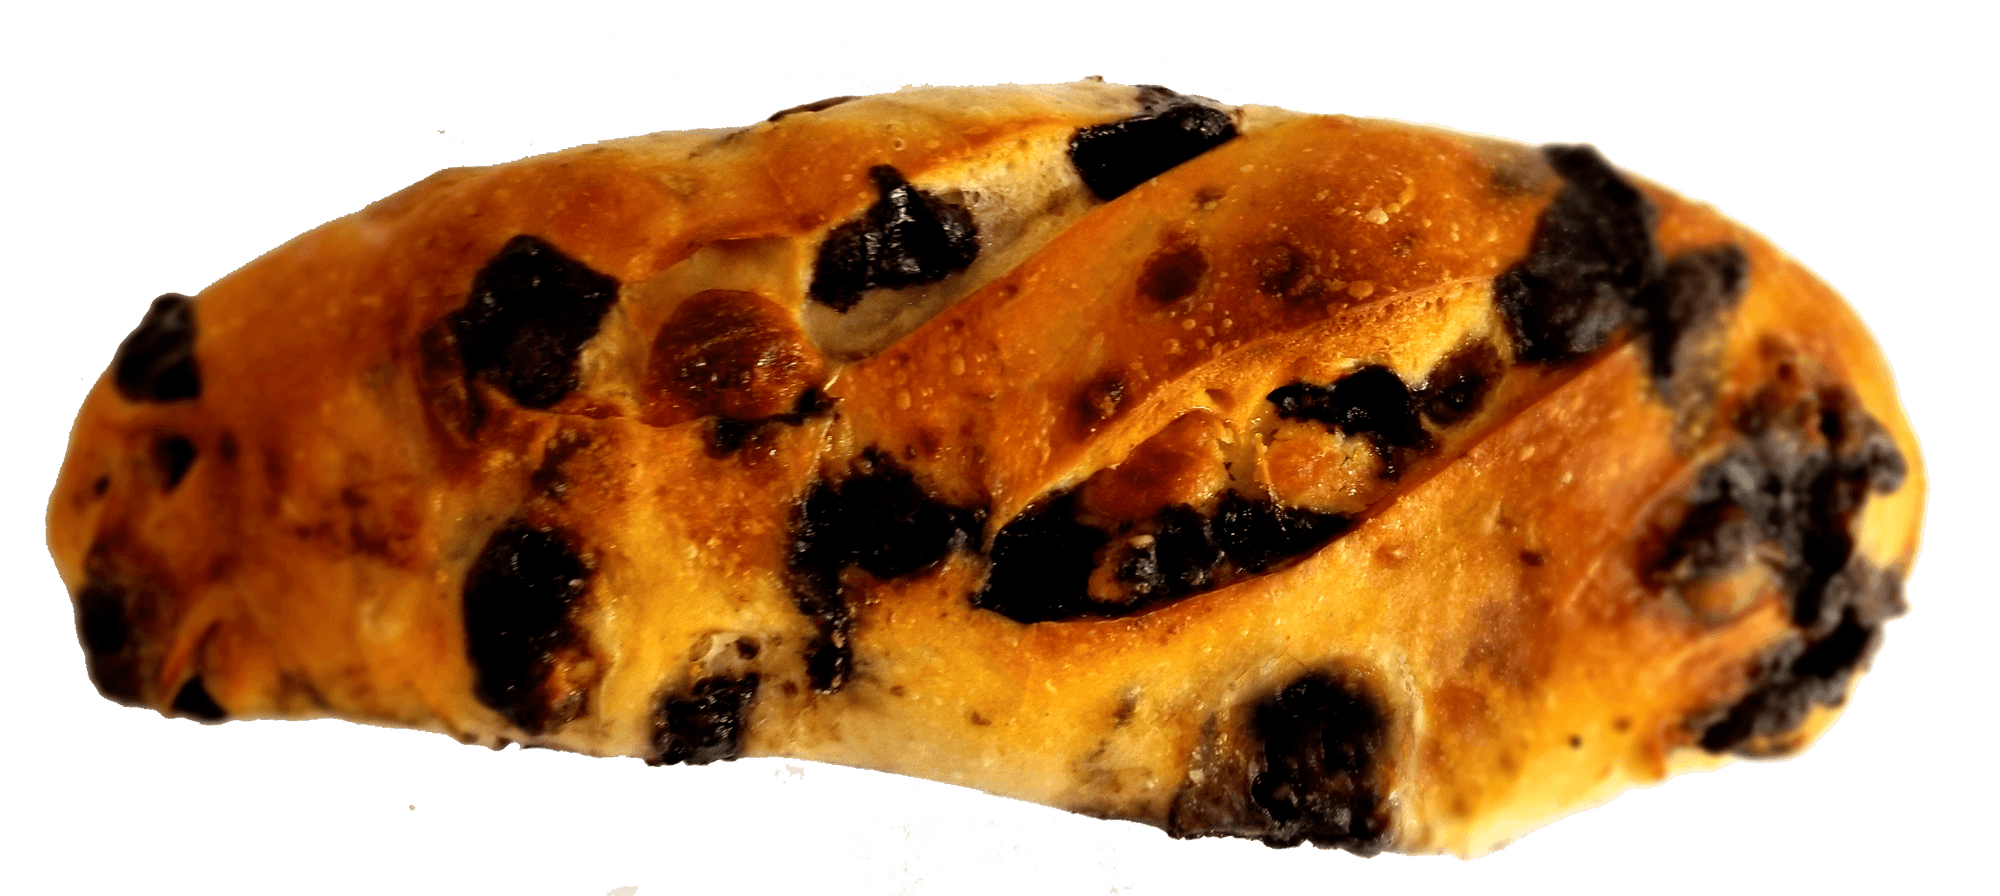 Chocolate Bread - Frank And Sal Bakery: Our Famous Chocolate Bread - 2 Fully Cooked Loaves Warm And Serve.